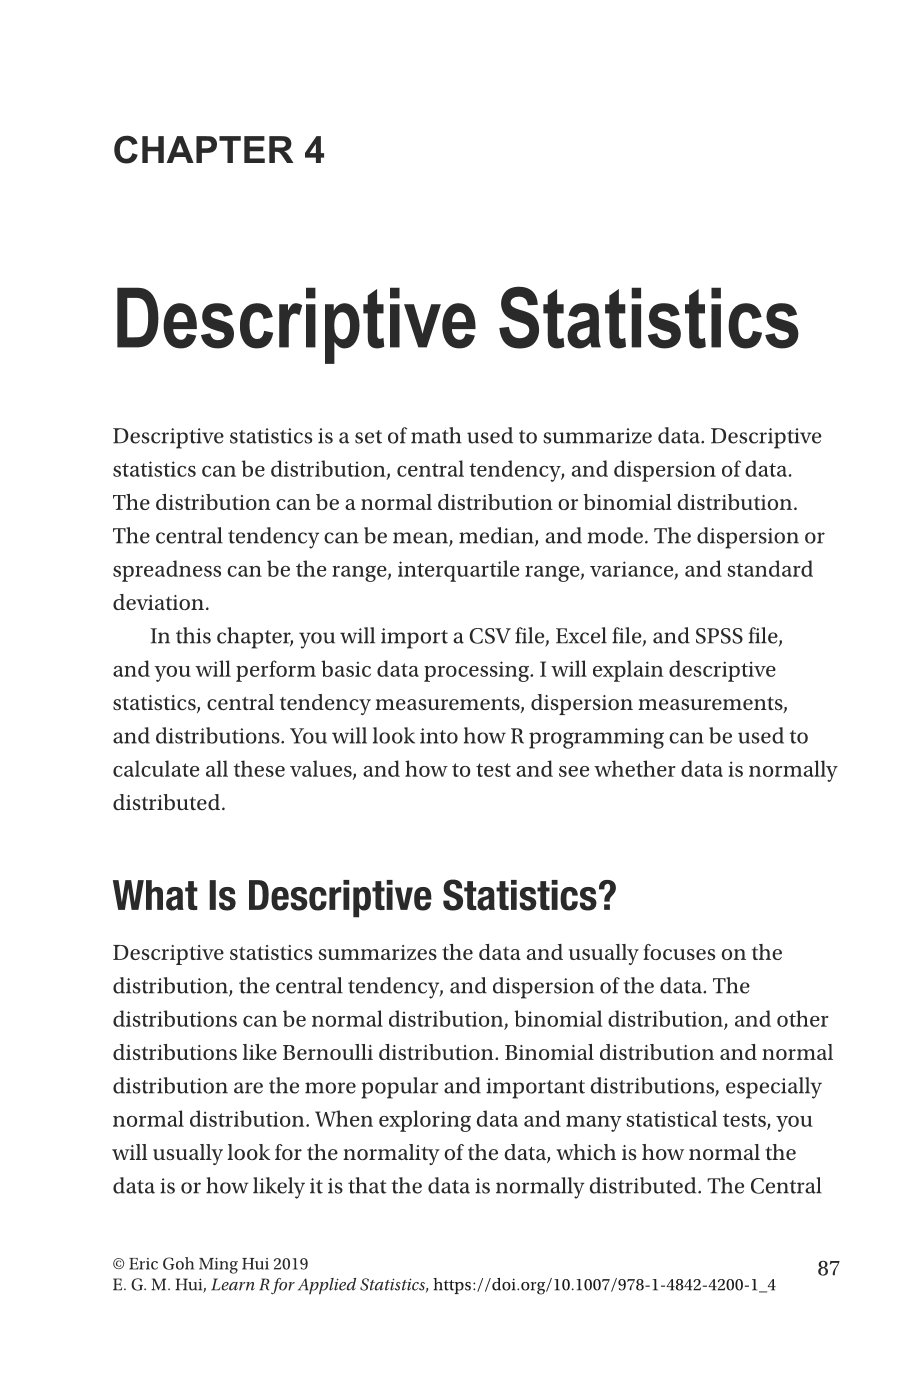 Learn R for Applied Statistics: With Data Visualizations, Regressions, and Statistics-preview-2